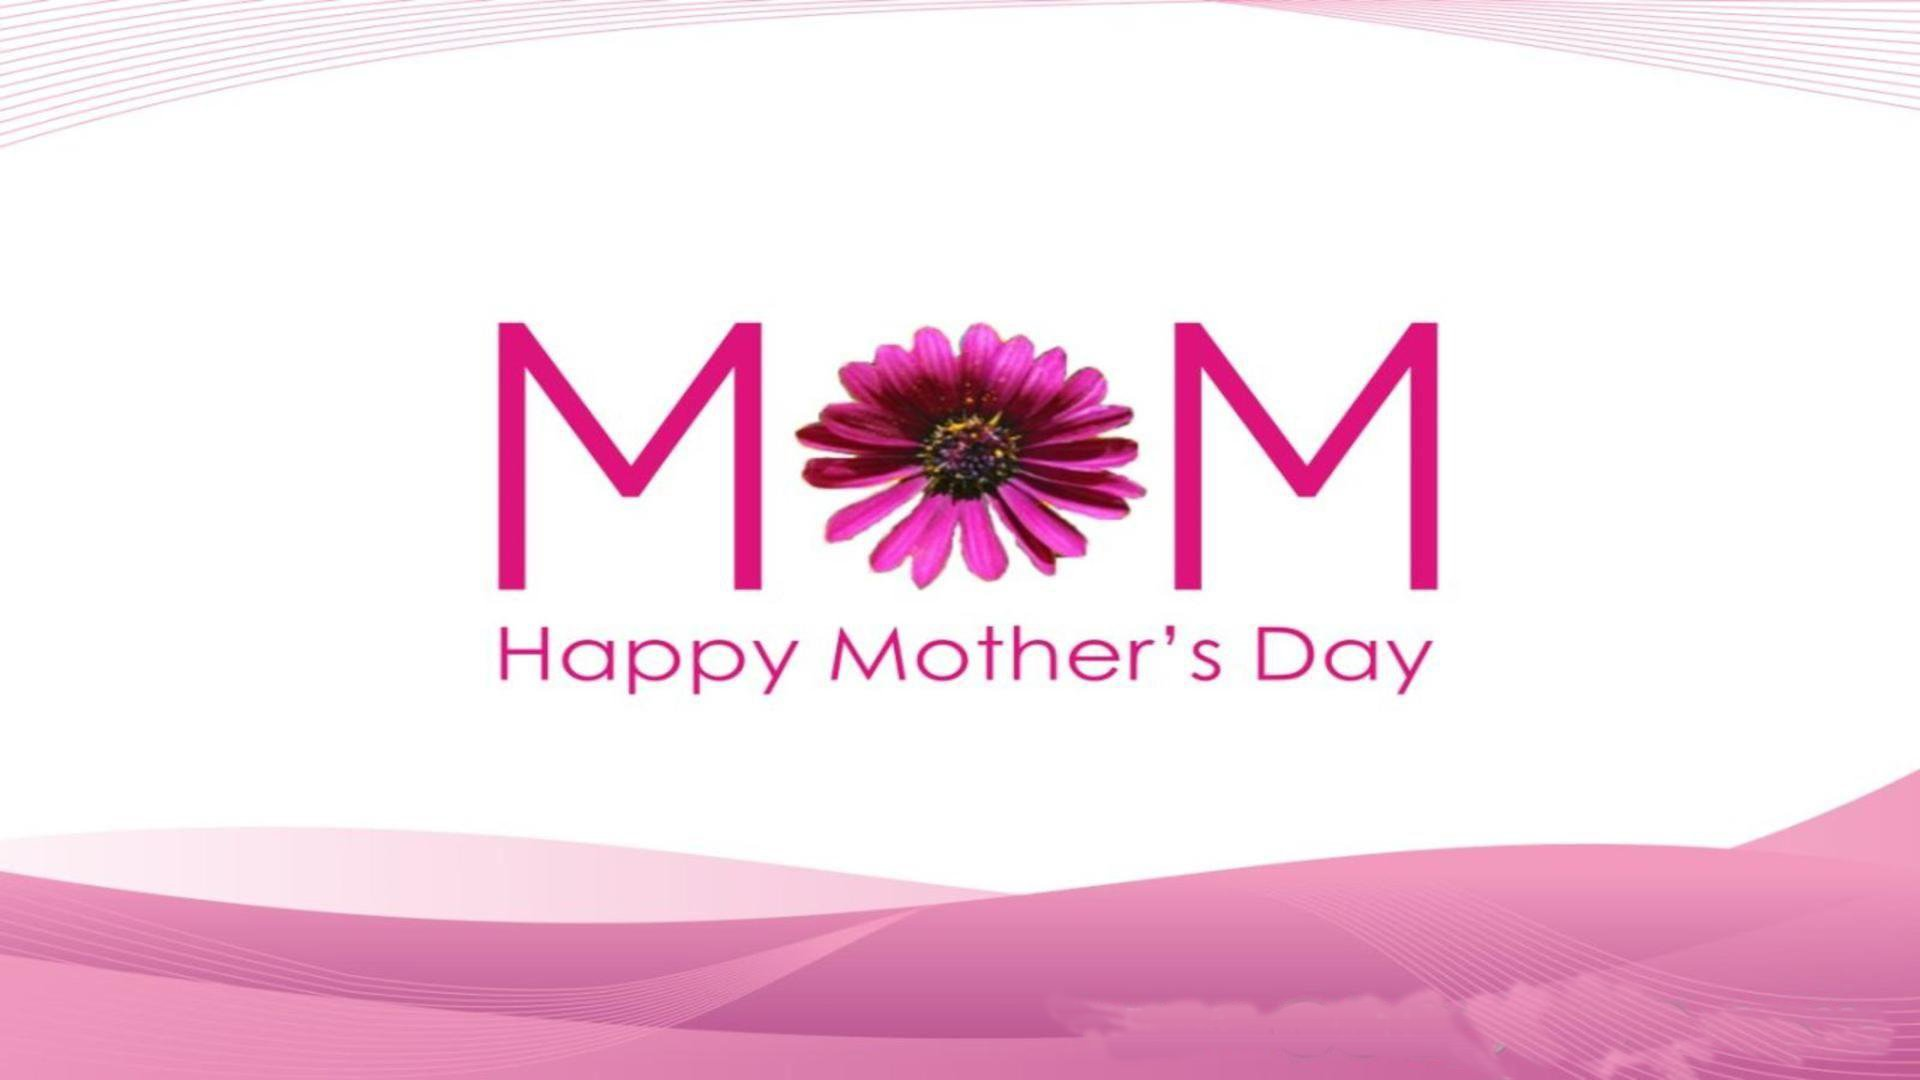 Mothers Day Wallpaper   Wallpaper High Definition High Quality 1920x1080